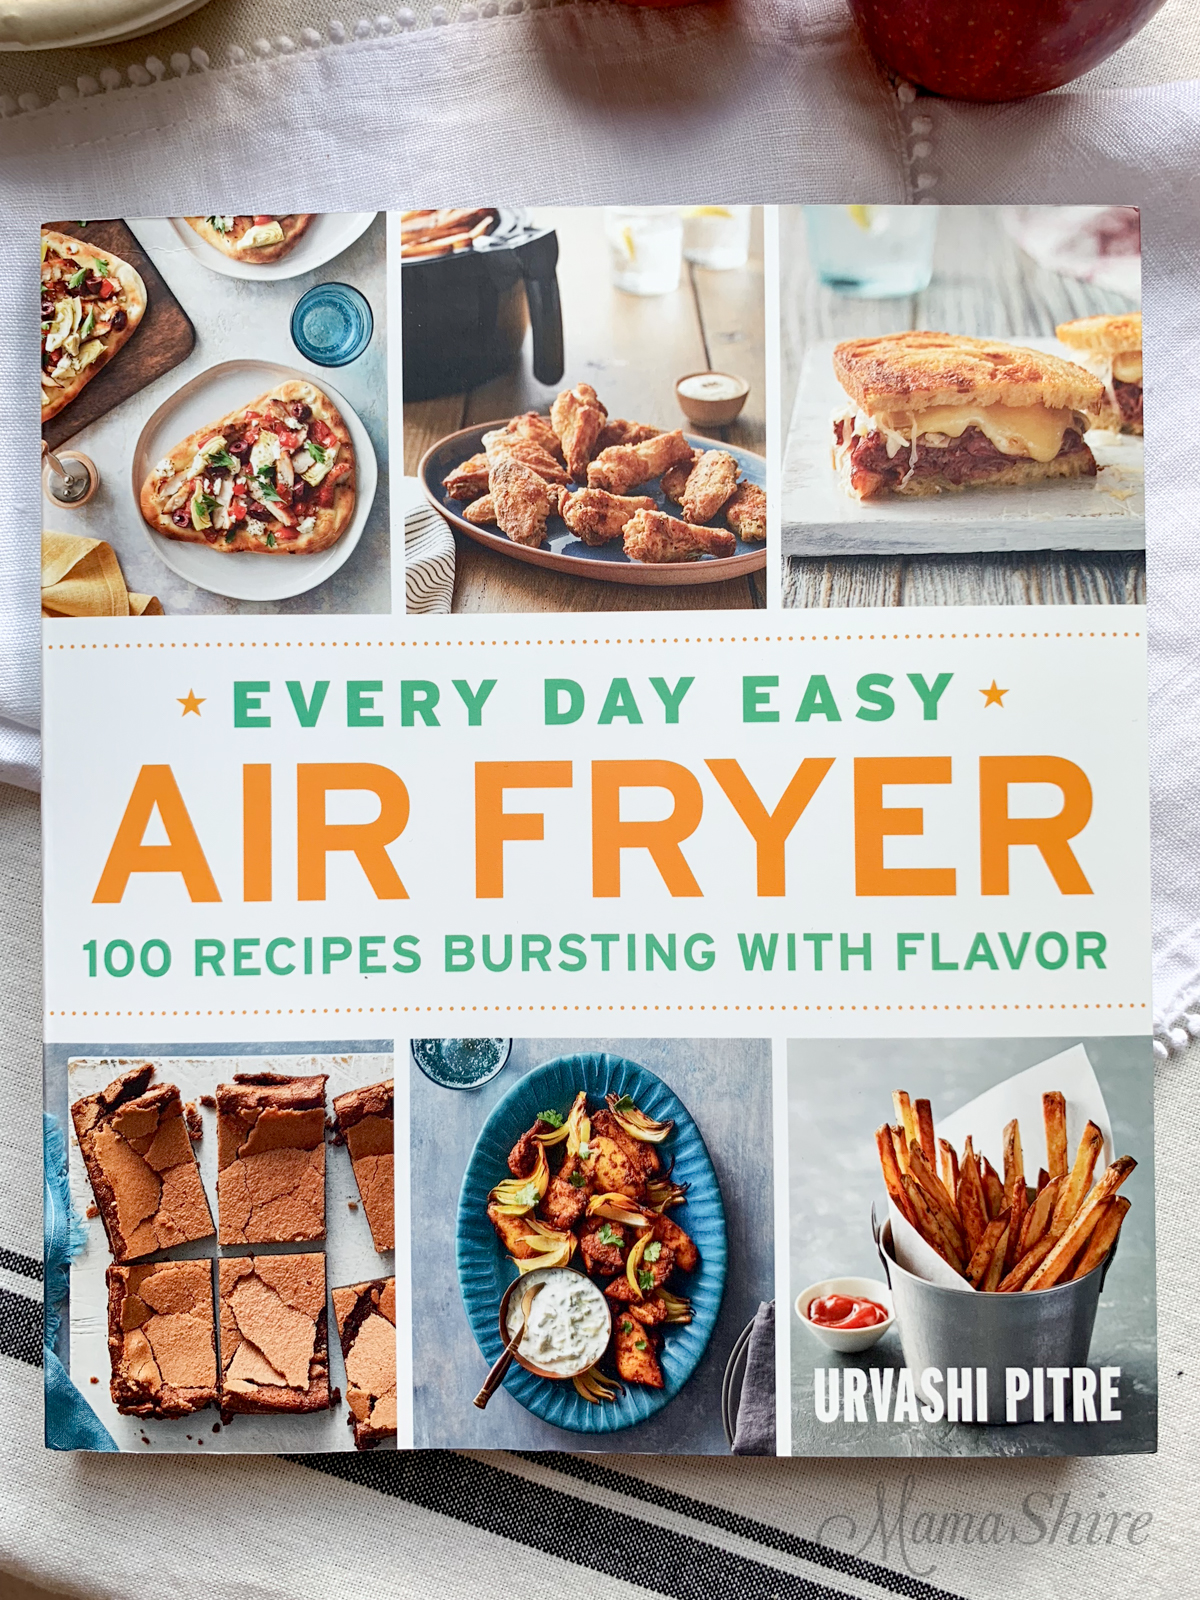 Every Day Easy Air Fryer by Urvashi Pitre